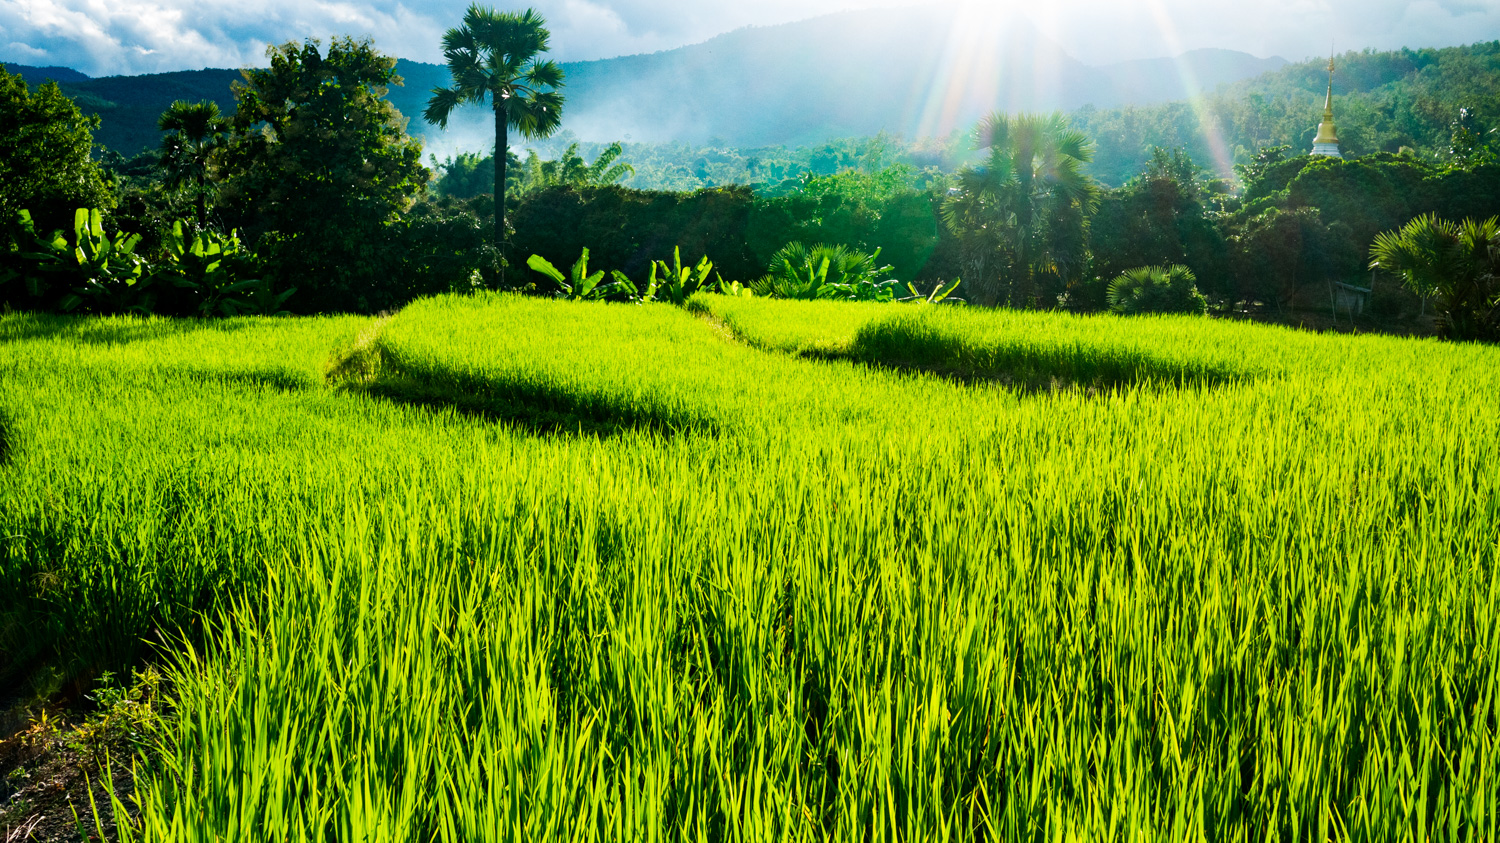 How to Make Well Exposed Photos Every Time Rice Fields